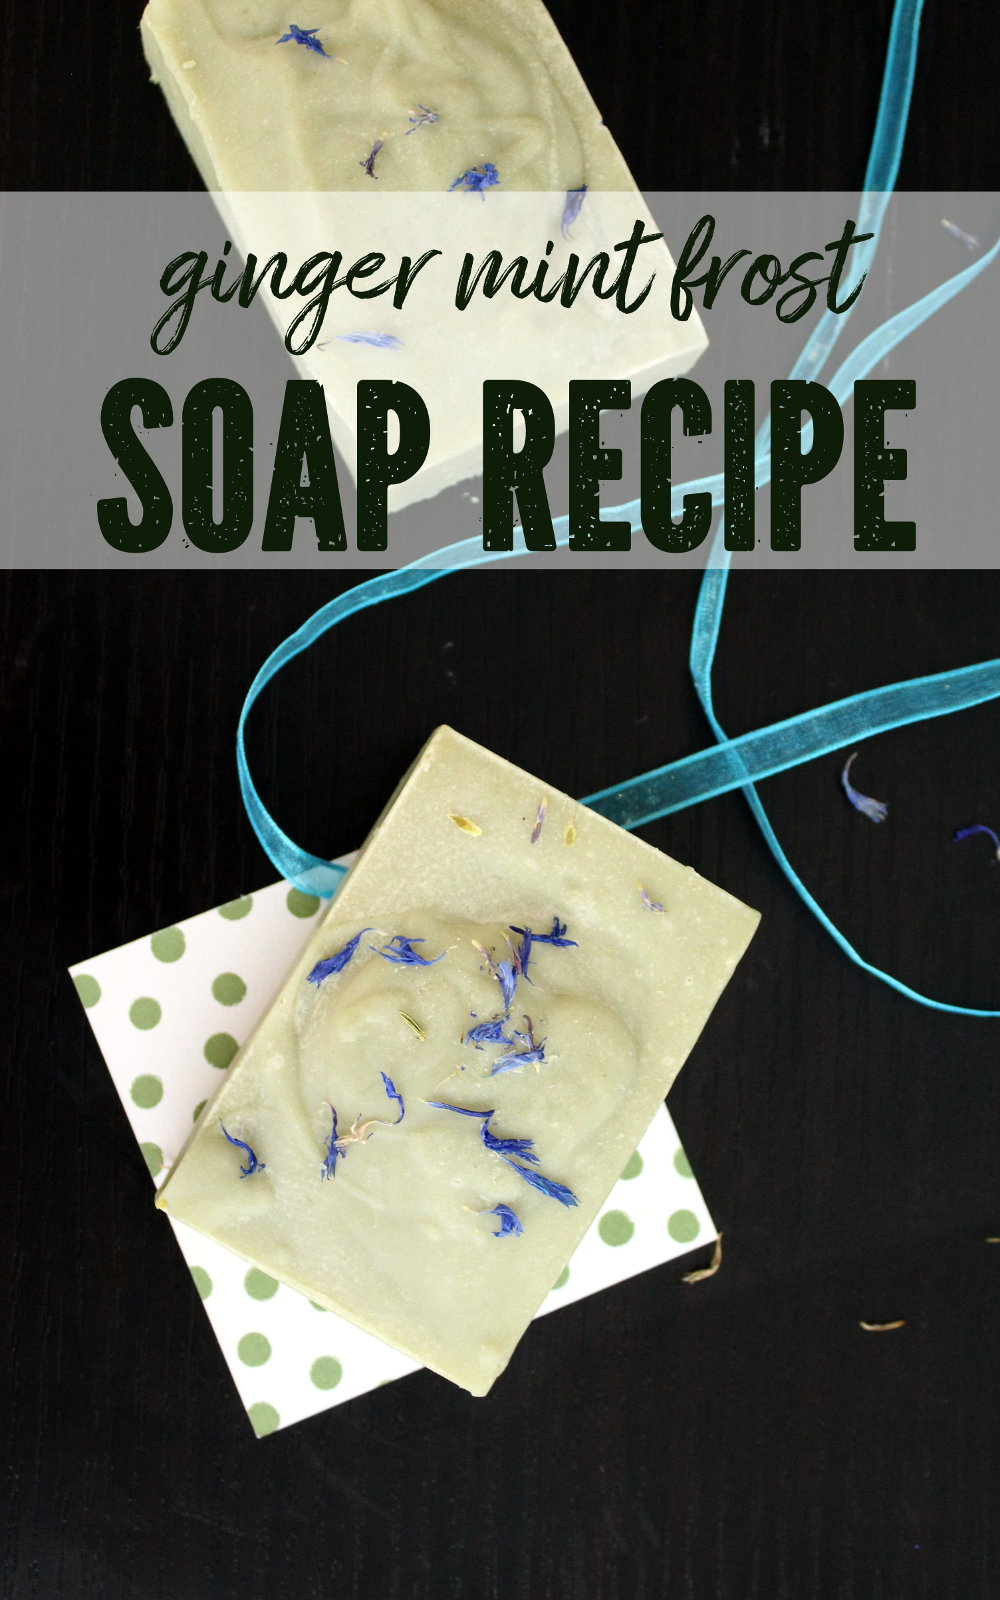 Ginger Mint Soap Recipe! This homemade ginger mint soap recipe is a wonderful skin care option for caring for and nourishing dry skin! Made with gentle ingredients that include cocoa butter, olive oil and black cumin seed oil, this ginger mint soap is a year round delight for anyone in need of a gentle cleanser to soothe irritated or dry skin.#soap #soapmaking #skincare #soaprecipe #blackcuminseedoil #oliveoil #beauty #dryskin #dryskinremedy #gentlecleanser #cleanser #diy #crafts